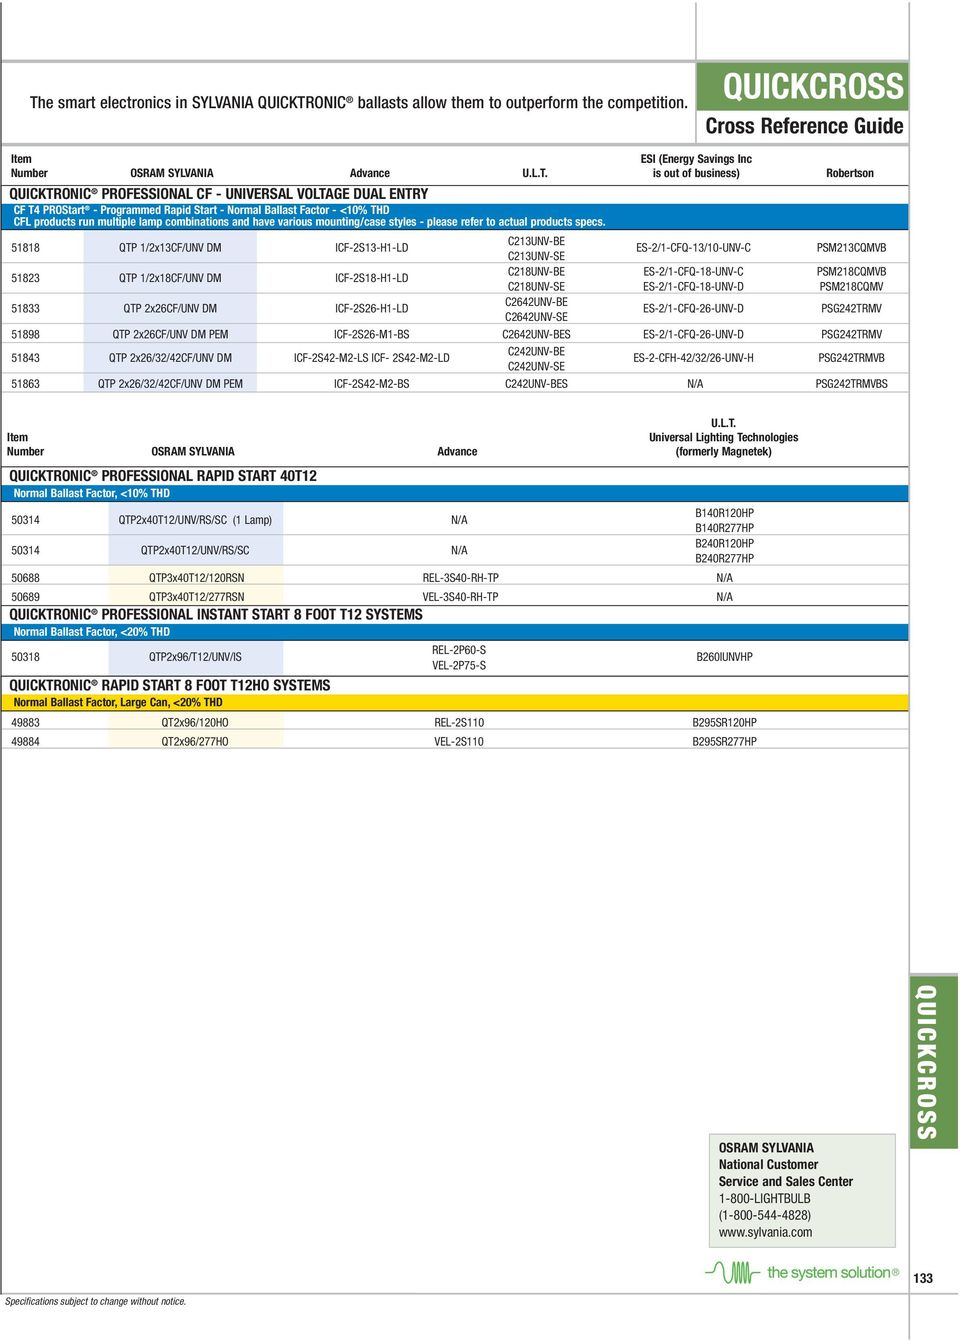 QUICKCROSS QUICKCROSS. Cross Reference Guide. The smart electronics on